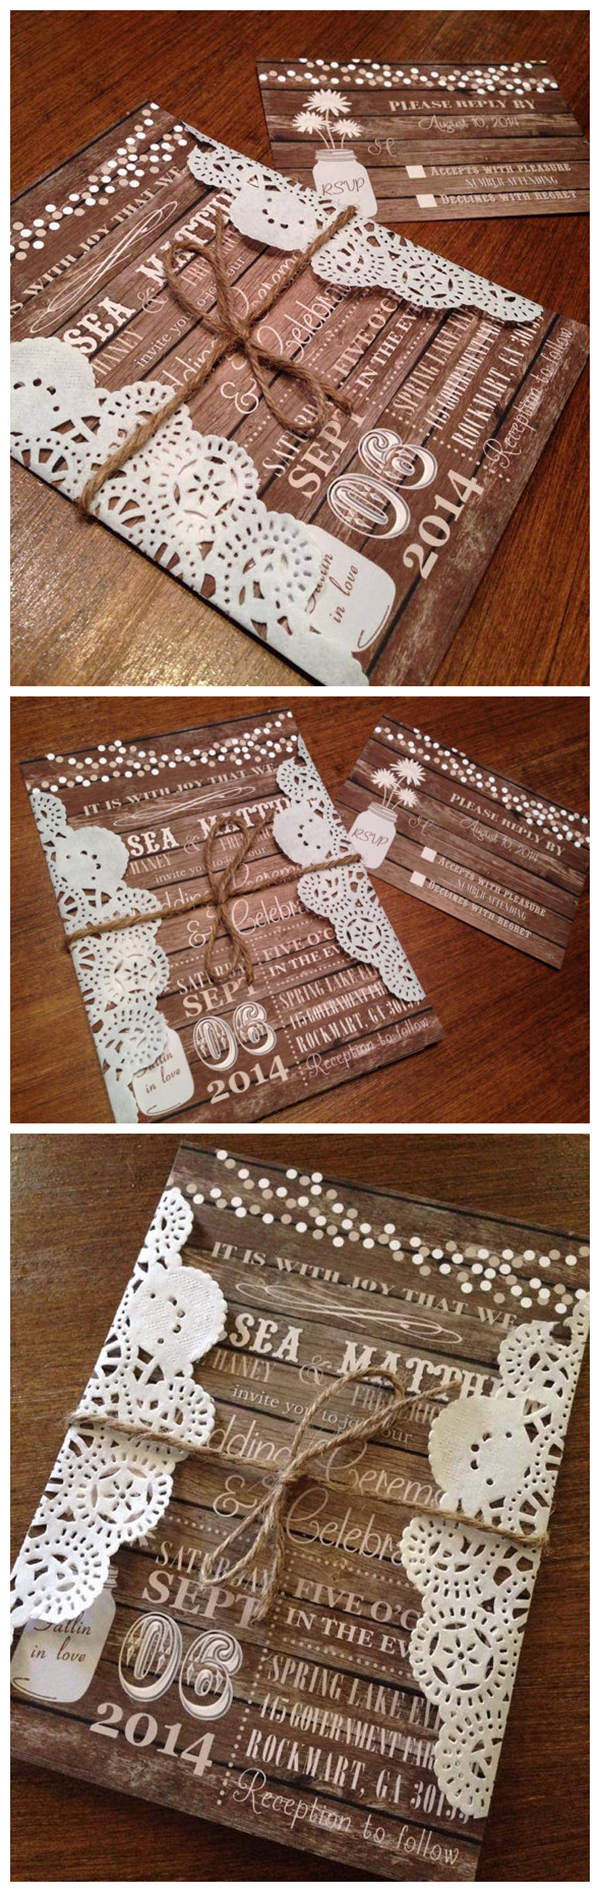 Rustic Wood Country fall wedding invitations